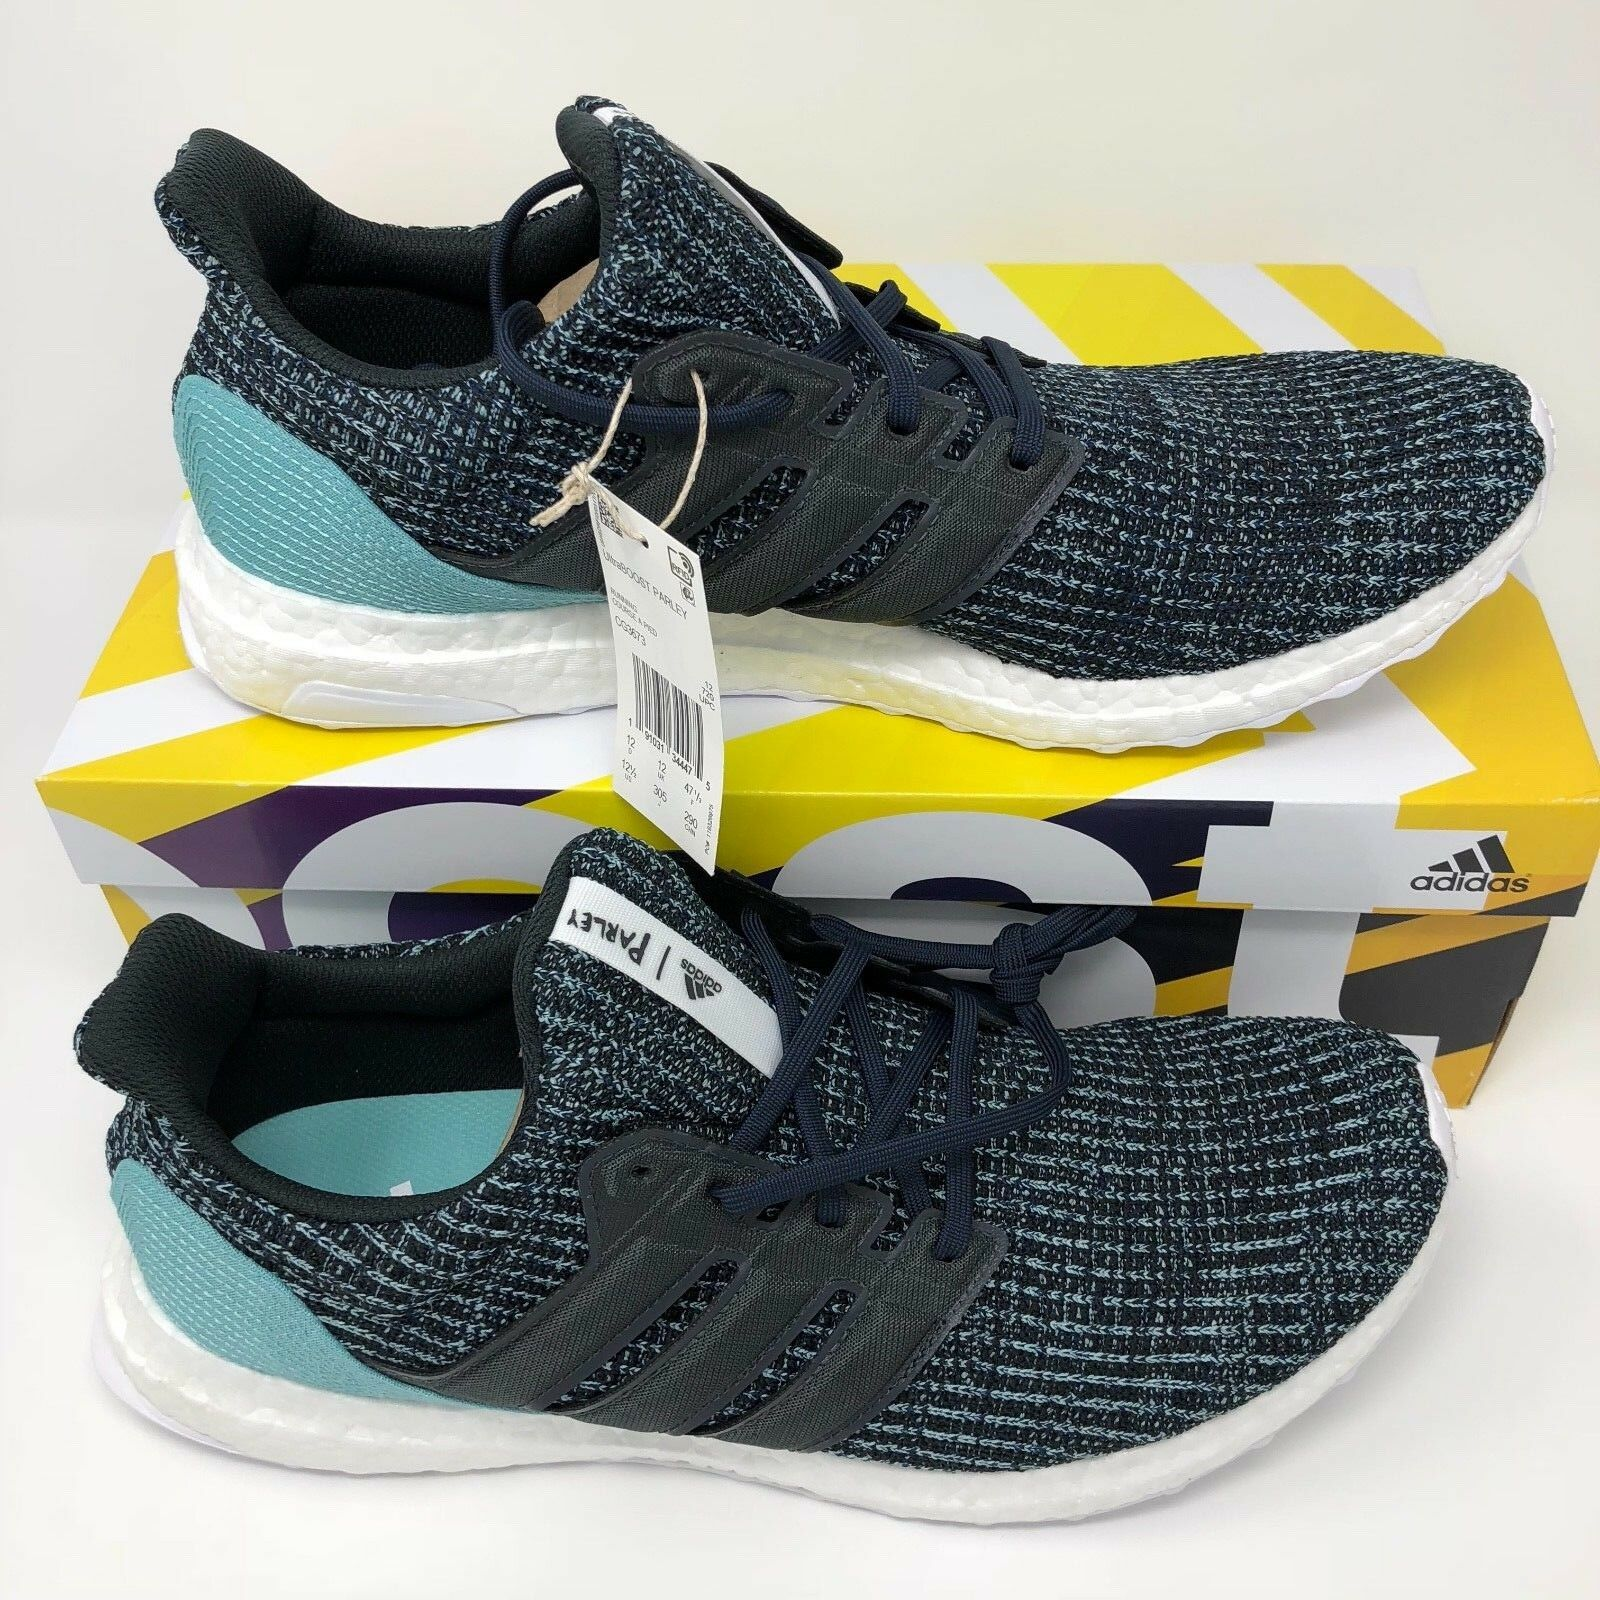 huge discount b6a8c 7fd72 CG3673]Brand New Men's ADIDAS UltraBOOST UltraBOOST ...